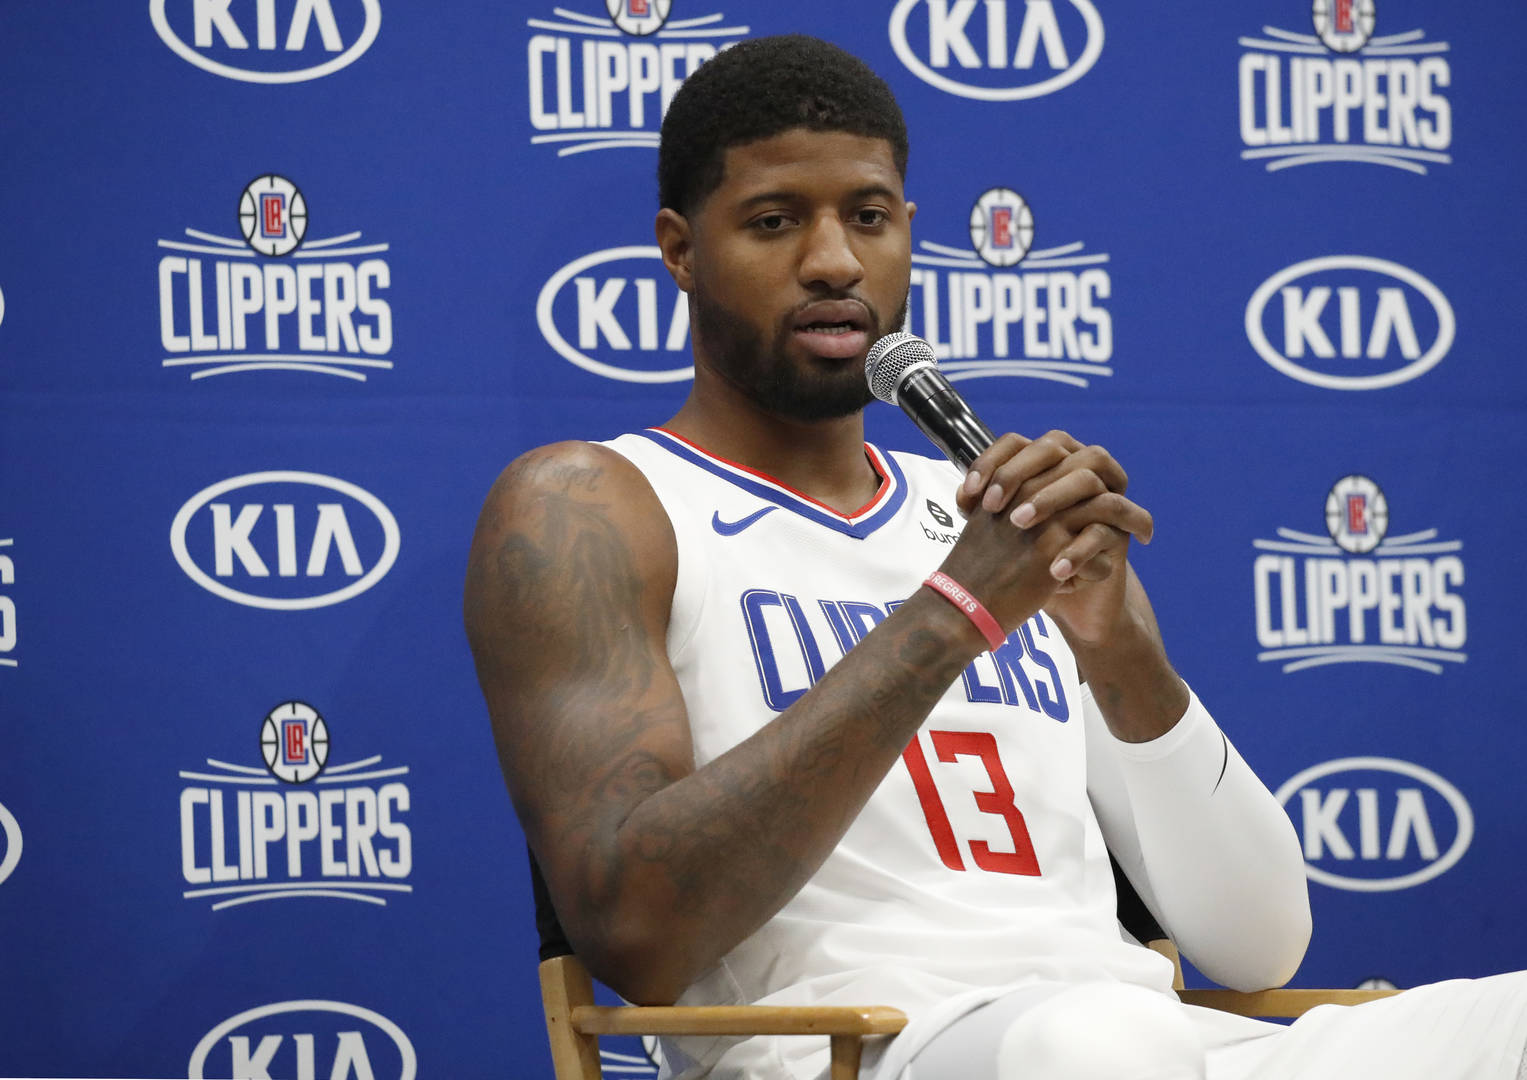 Paul George Could Be Back With The Clippers Sooner Than You Think: Report